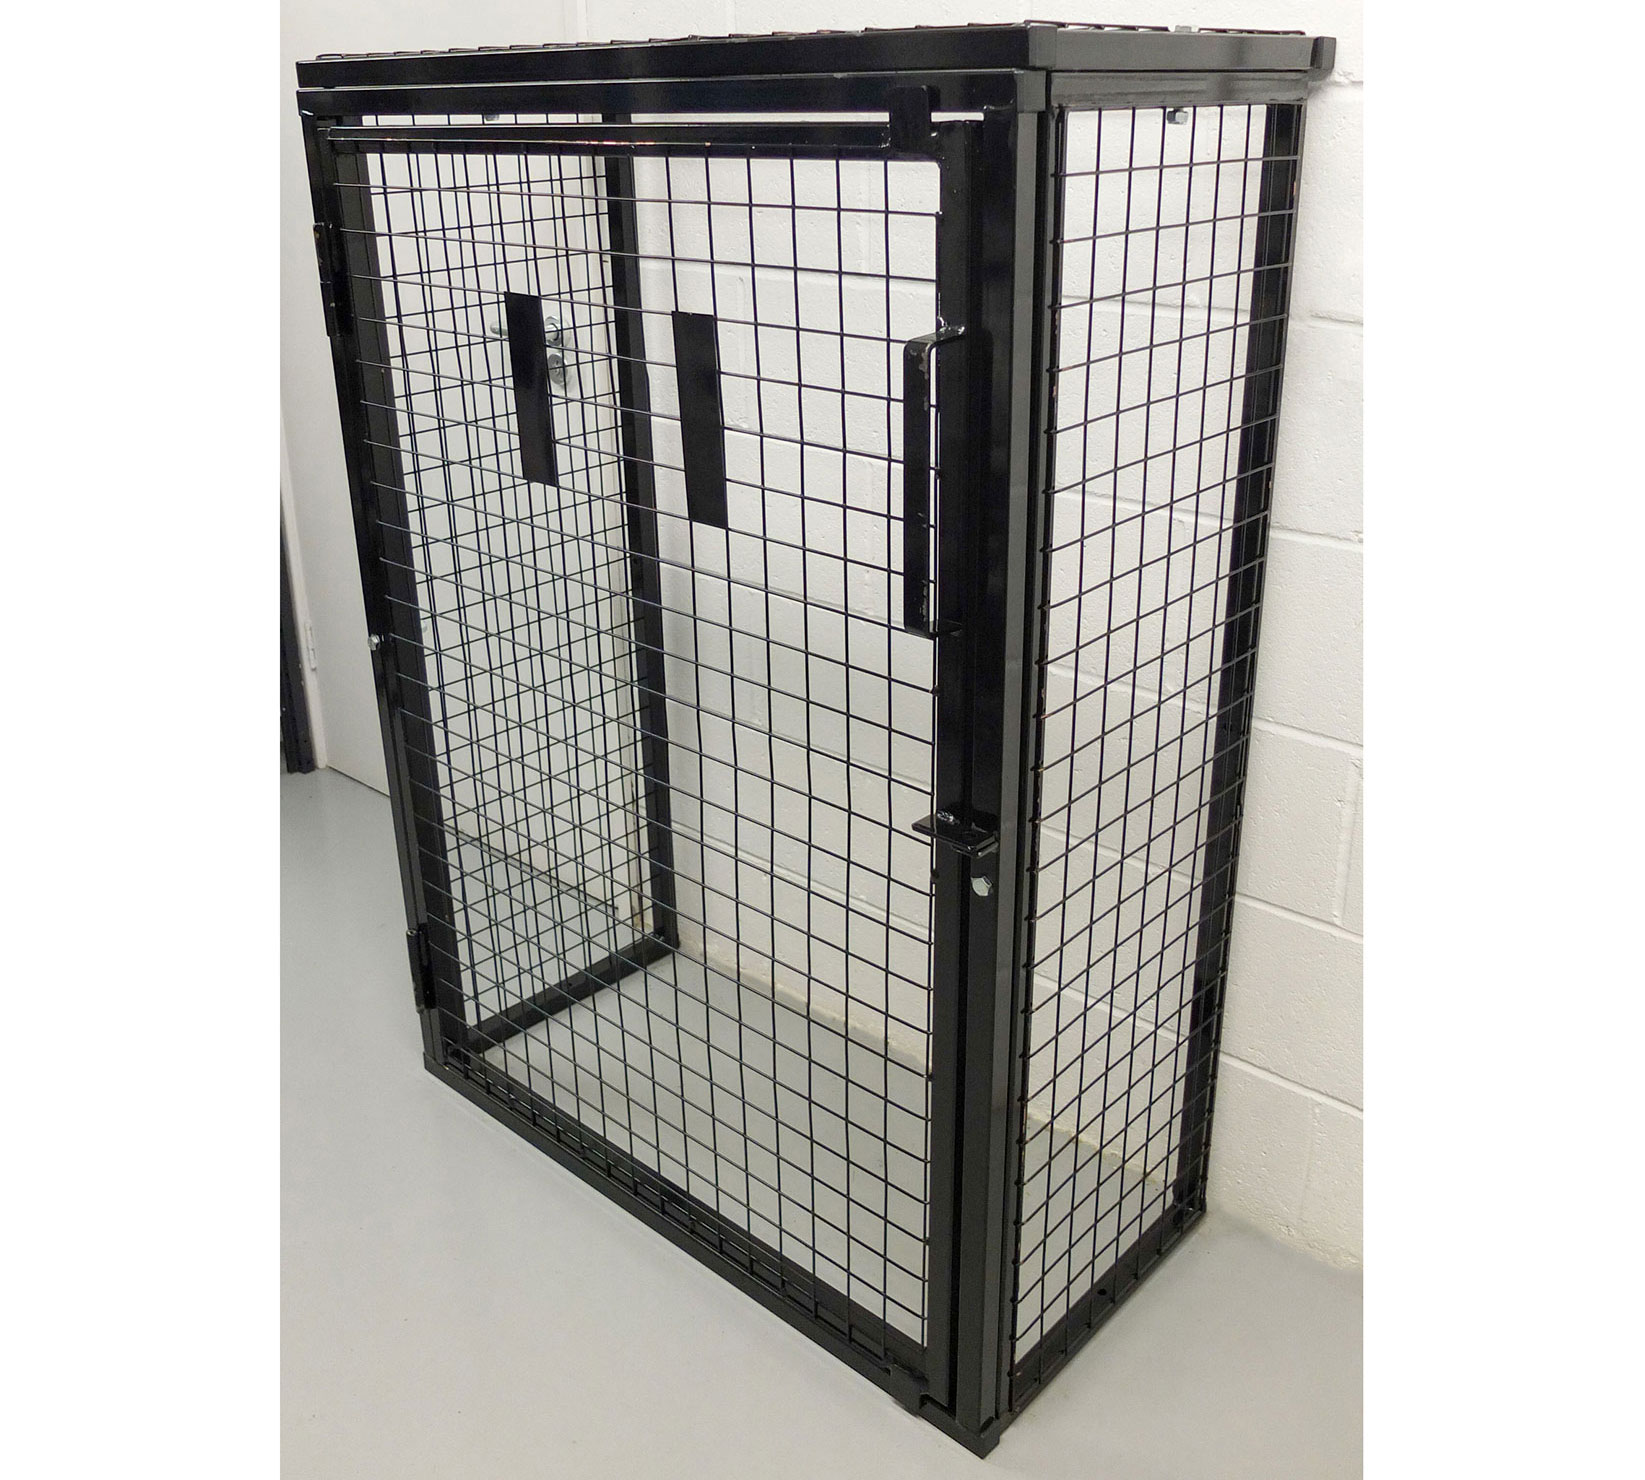 Air Conditioners For Small Rooms Air Conditioning Cage - Security Cages Direct